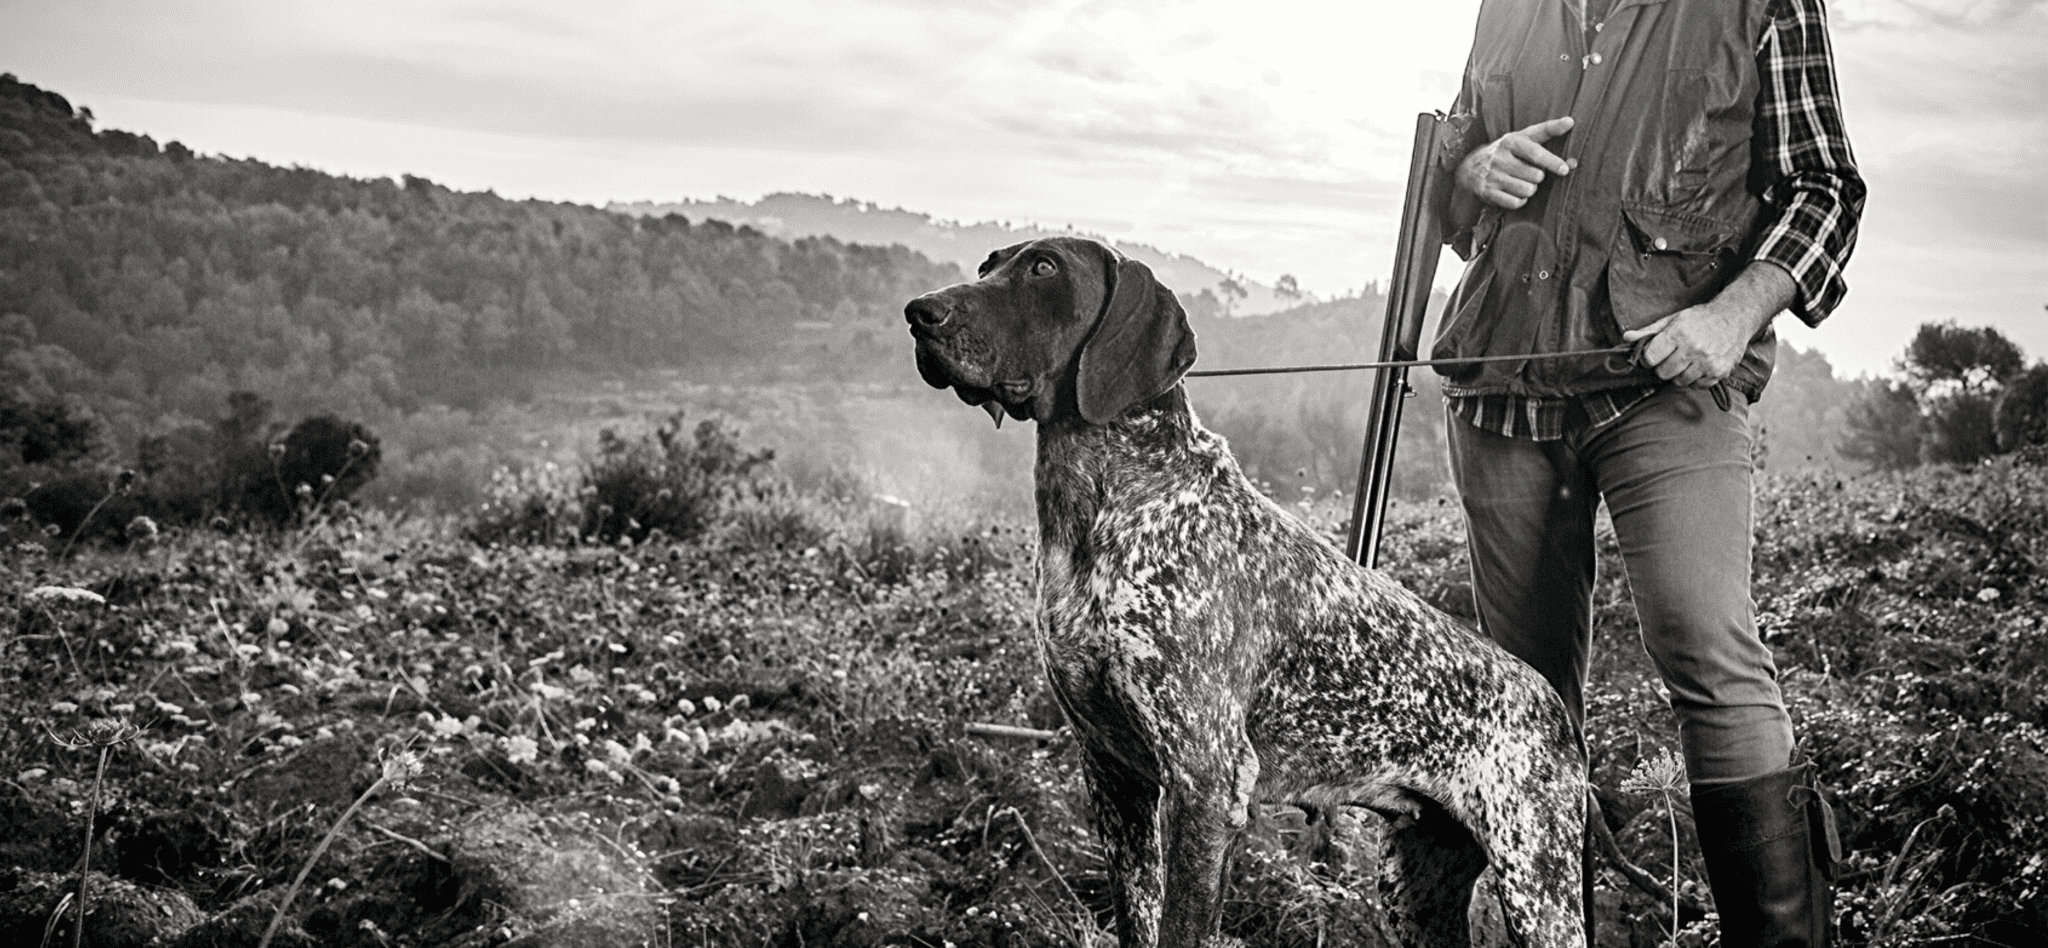 Hunters Natural Working Dog Food For Active Gun Dogs, Sheep Dogs and Agility Dogs